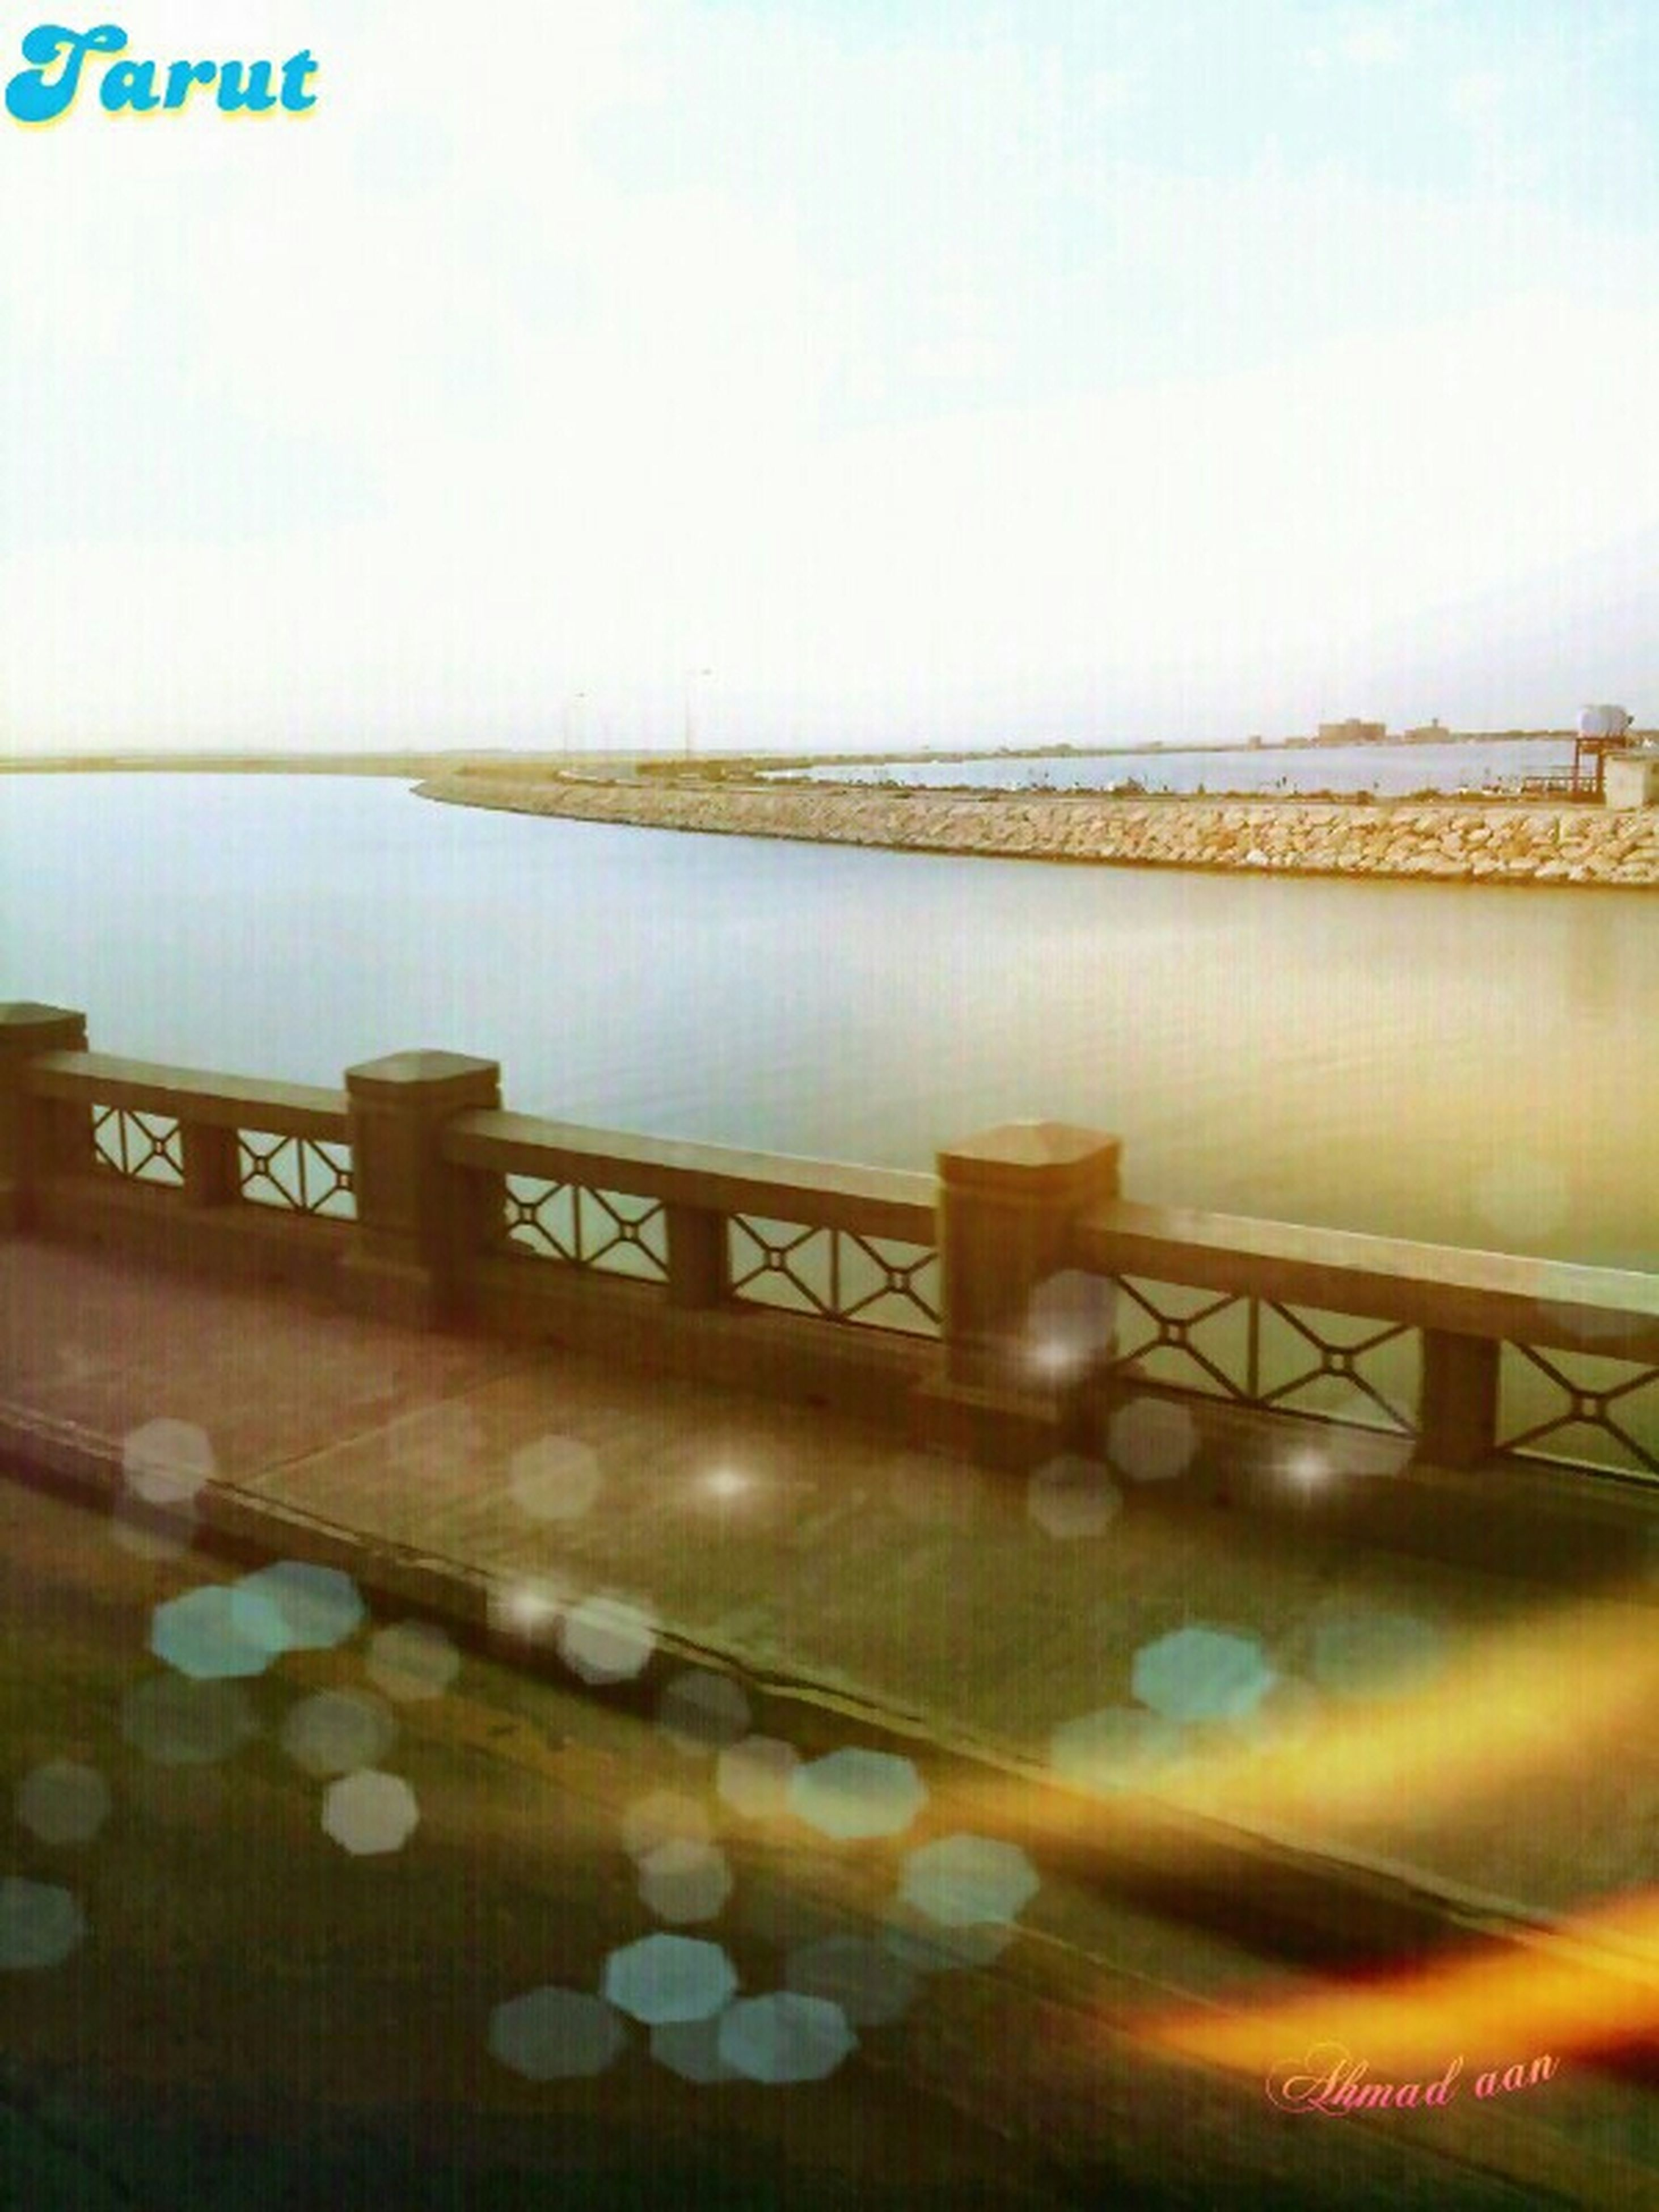 water, built structure, architecture, sky, sea, railing, river, bridge - man made structure, nature, connection, tranquility, scenics, tranquil scene, outdoors, no people, transportation, copy space, beauty in nature, building exterior, high angle view